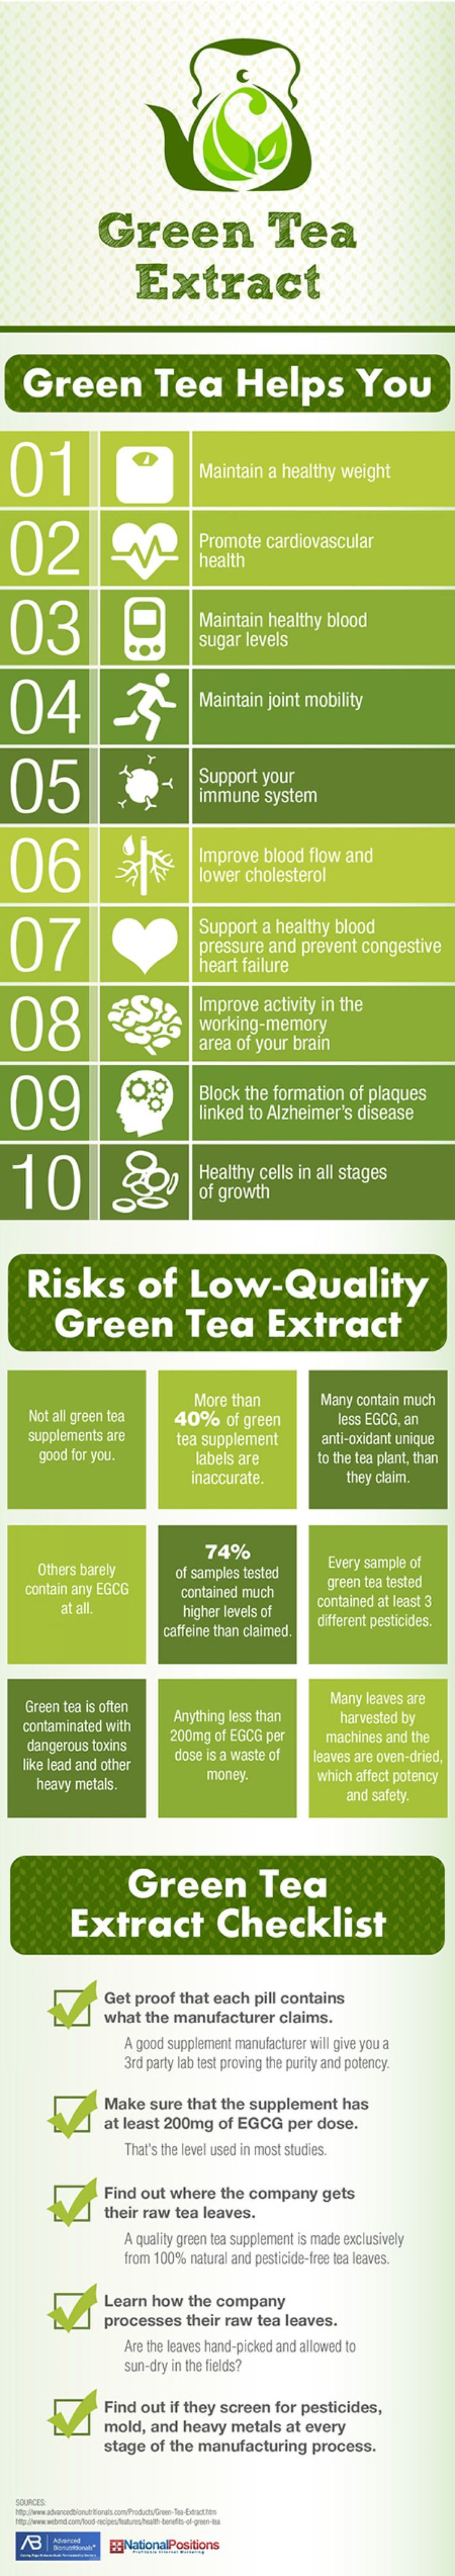 Olestra/olean, high fructose corn syrup, Food preservatives, gut flora, over… http://teapause.com/healthiest-teas-to-drink/